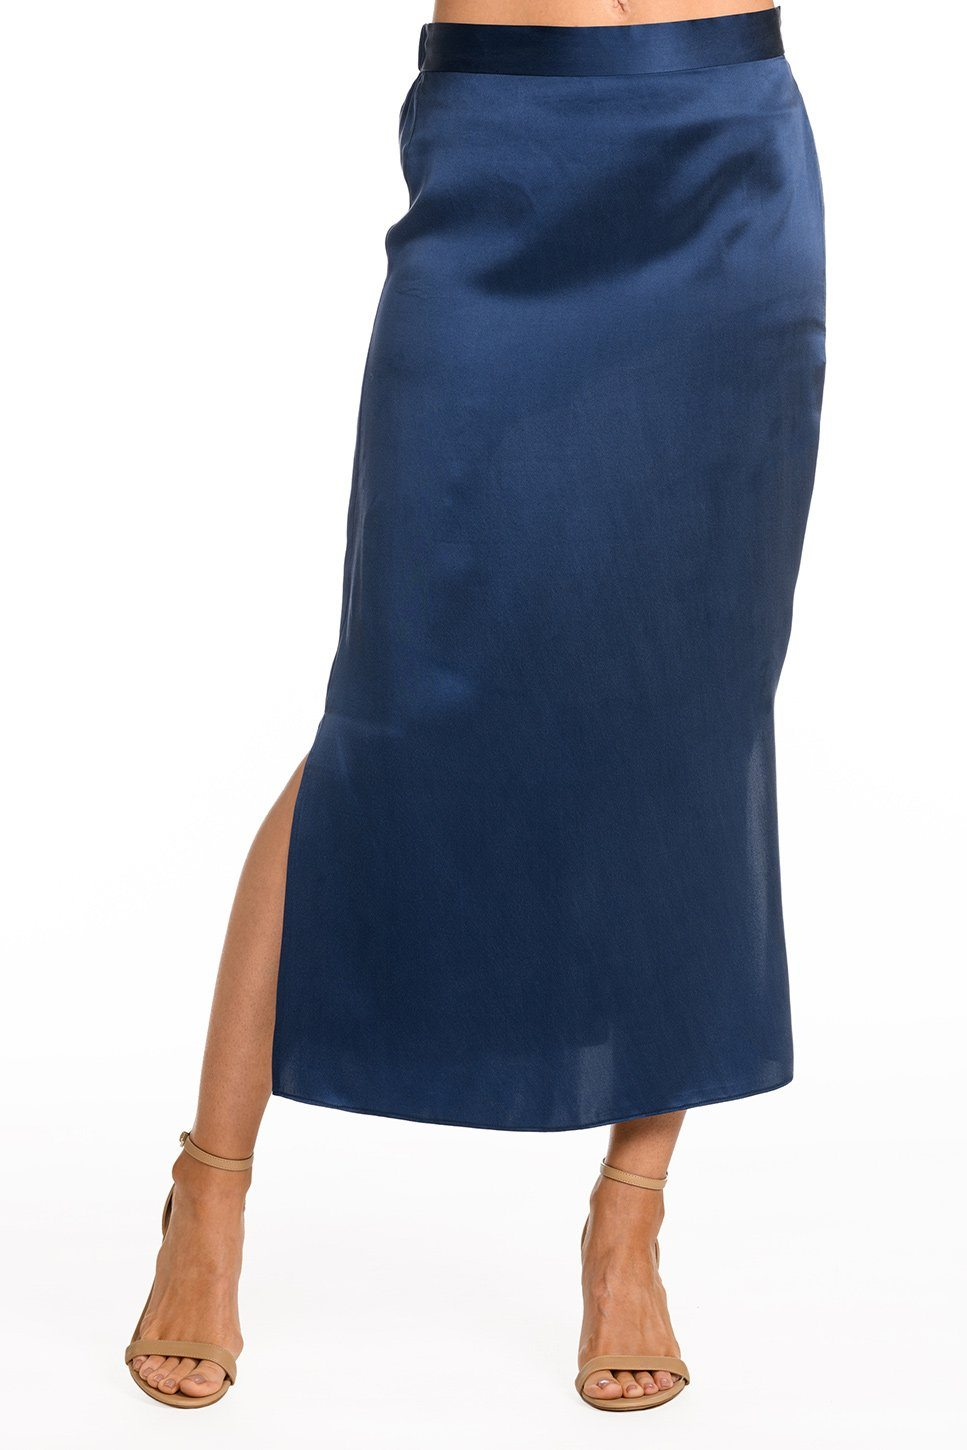 One model wearing a ladies flared midi slip skirt in navy on a white background.